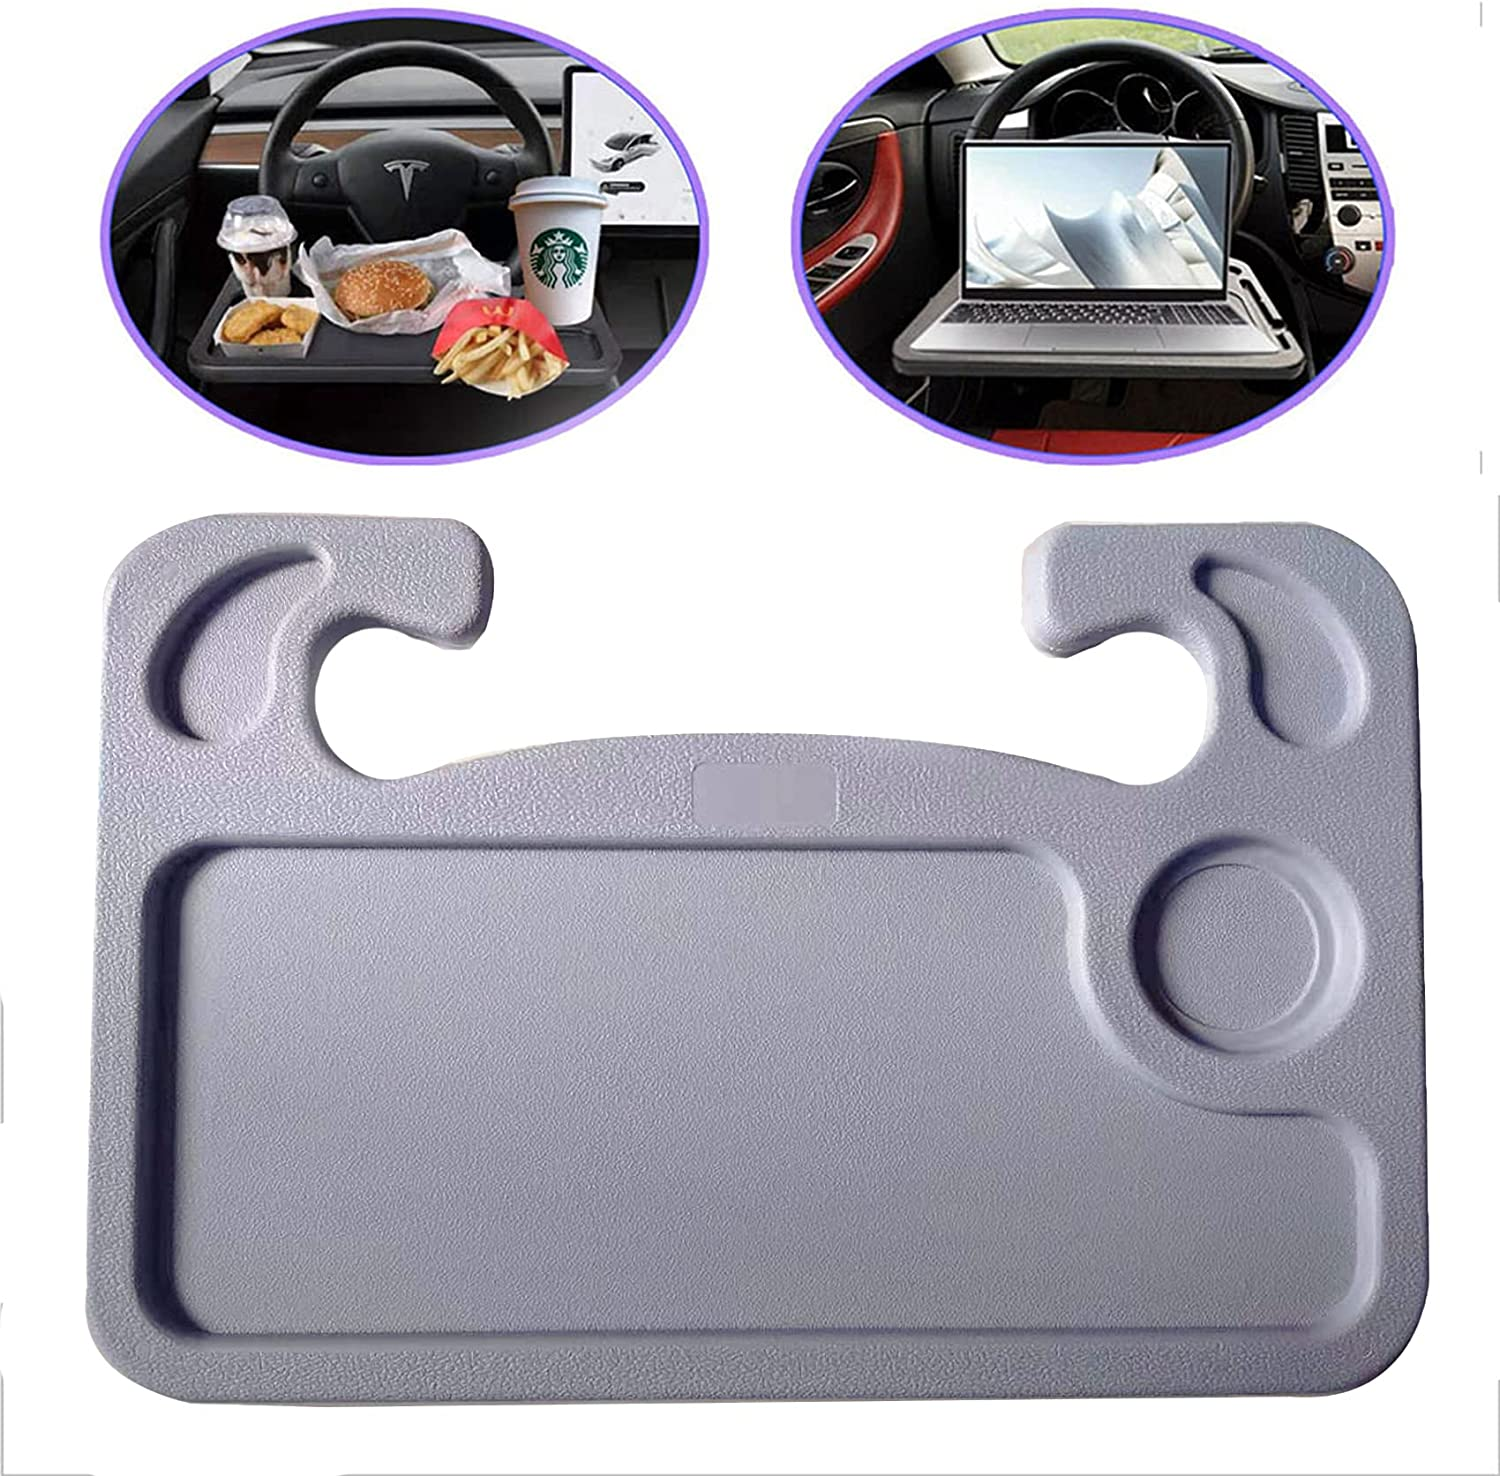 BLUERICE Car Steering Wheel Tray Desk for Max 58% OFF Table E Popular product